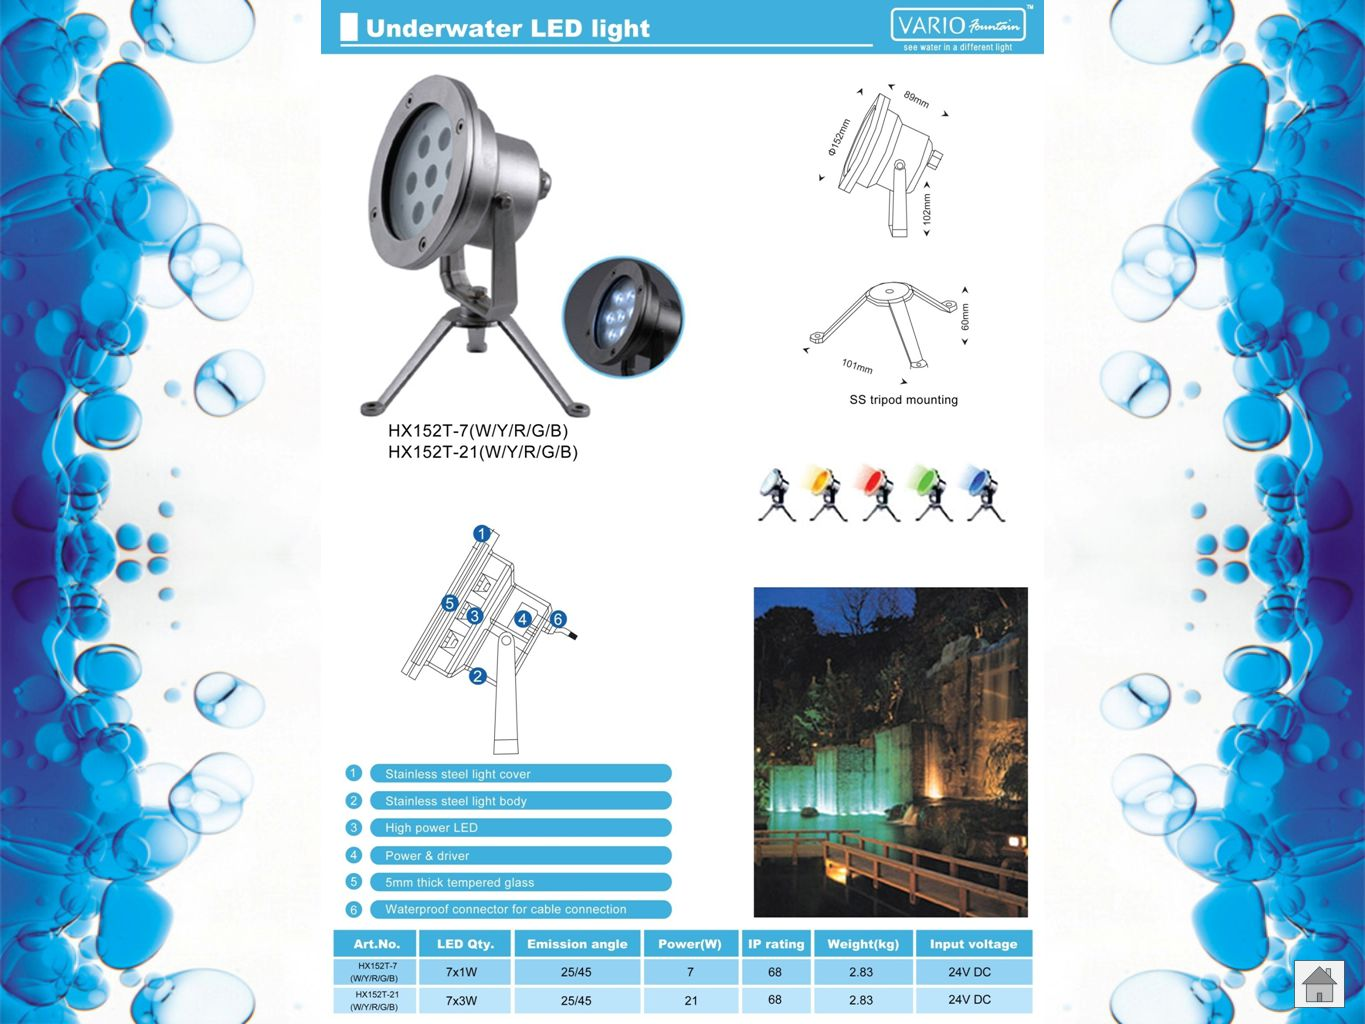 High intensity LED comparable to incandescent and halogen bulbs Better efficiency Low voltage, energy saving Life span of 80,000 hrs Do not require th